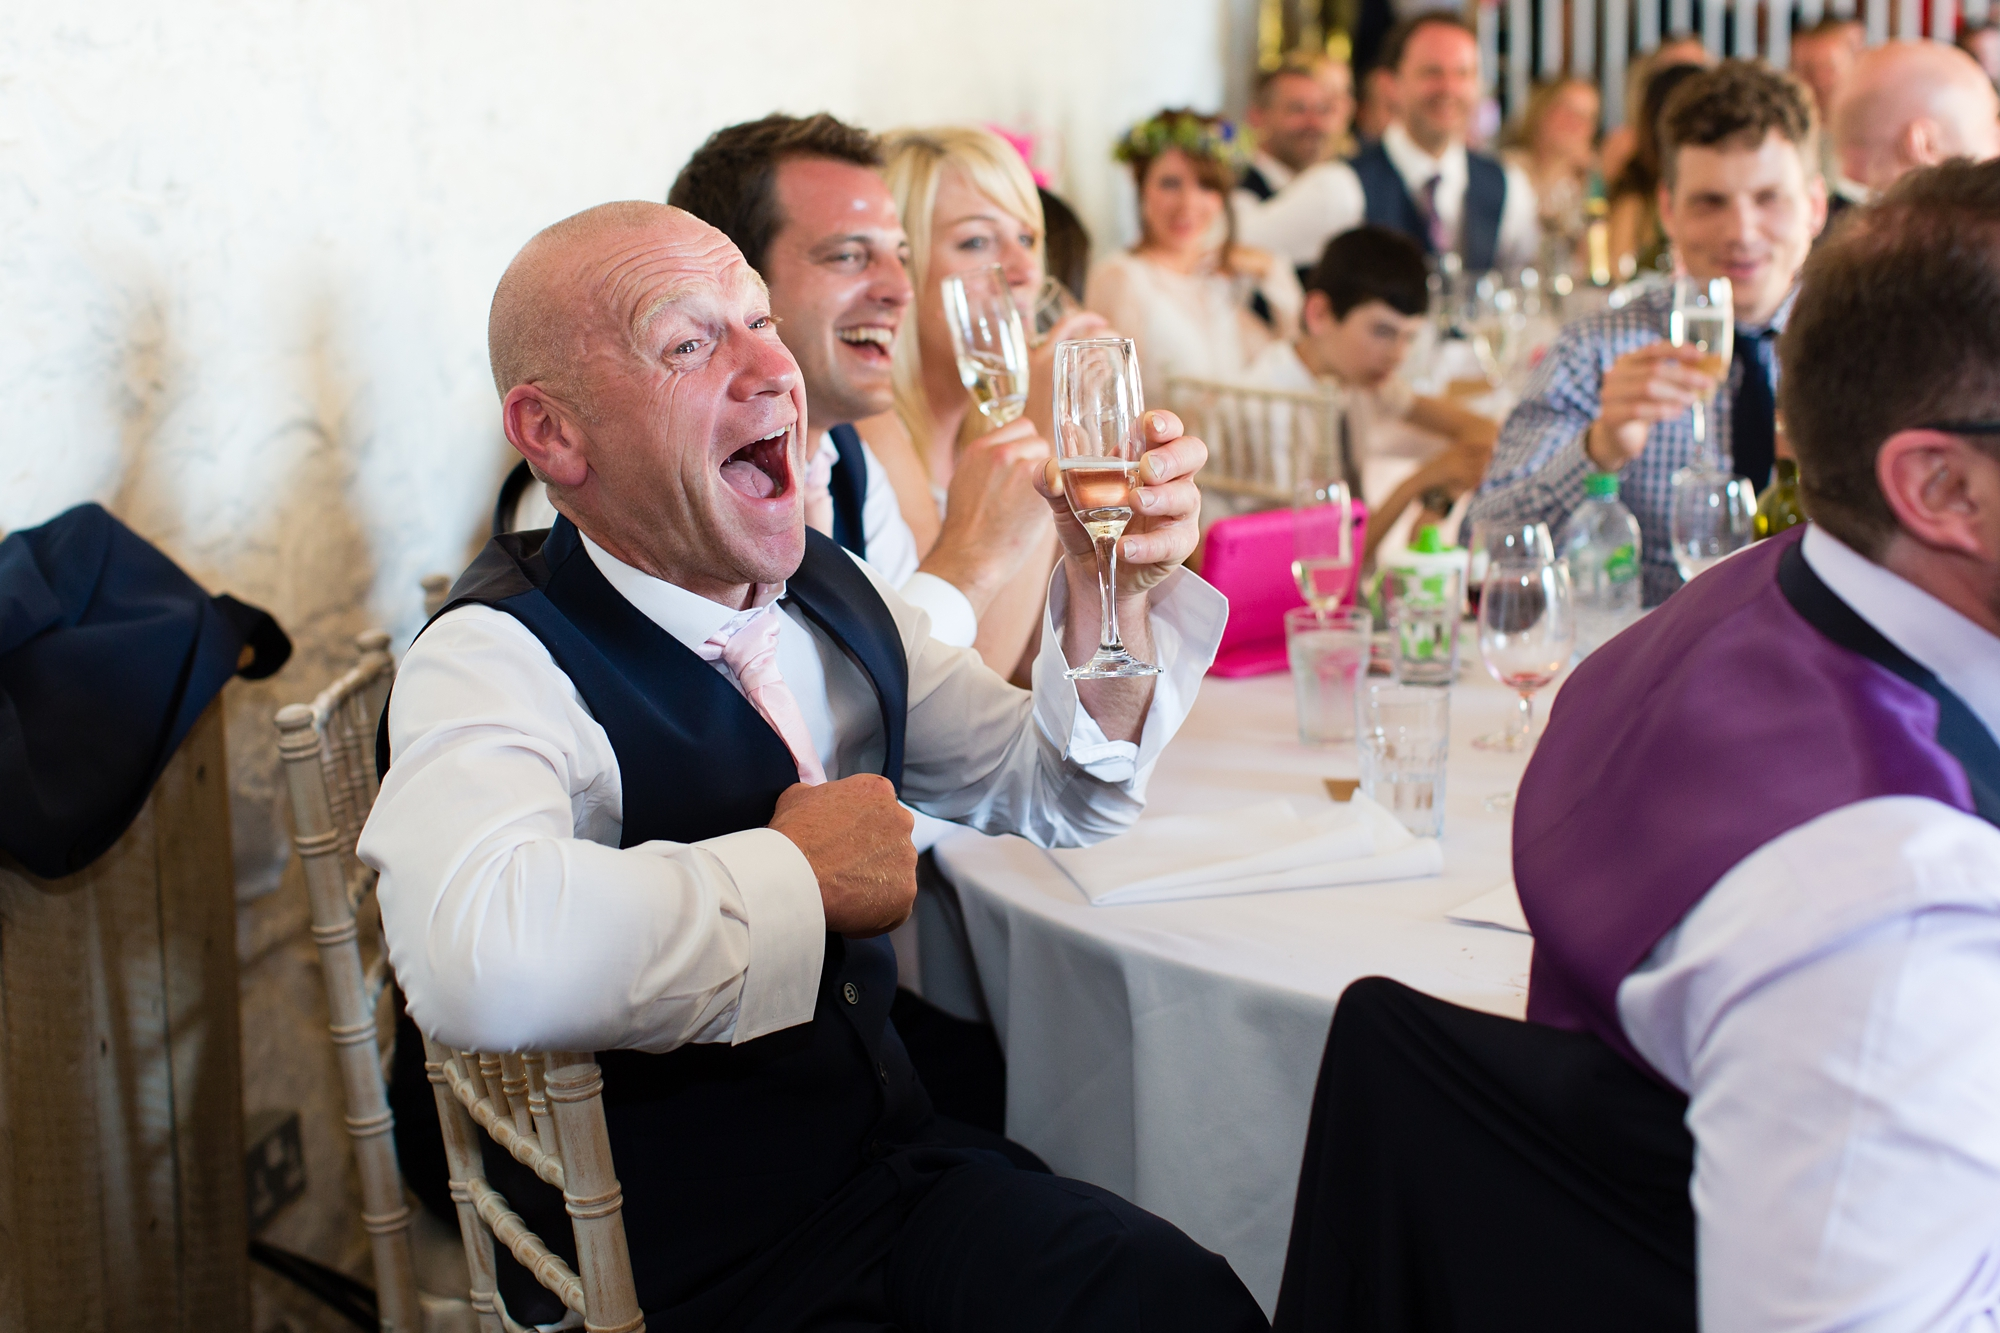 Guests laugh during speeches at wedding